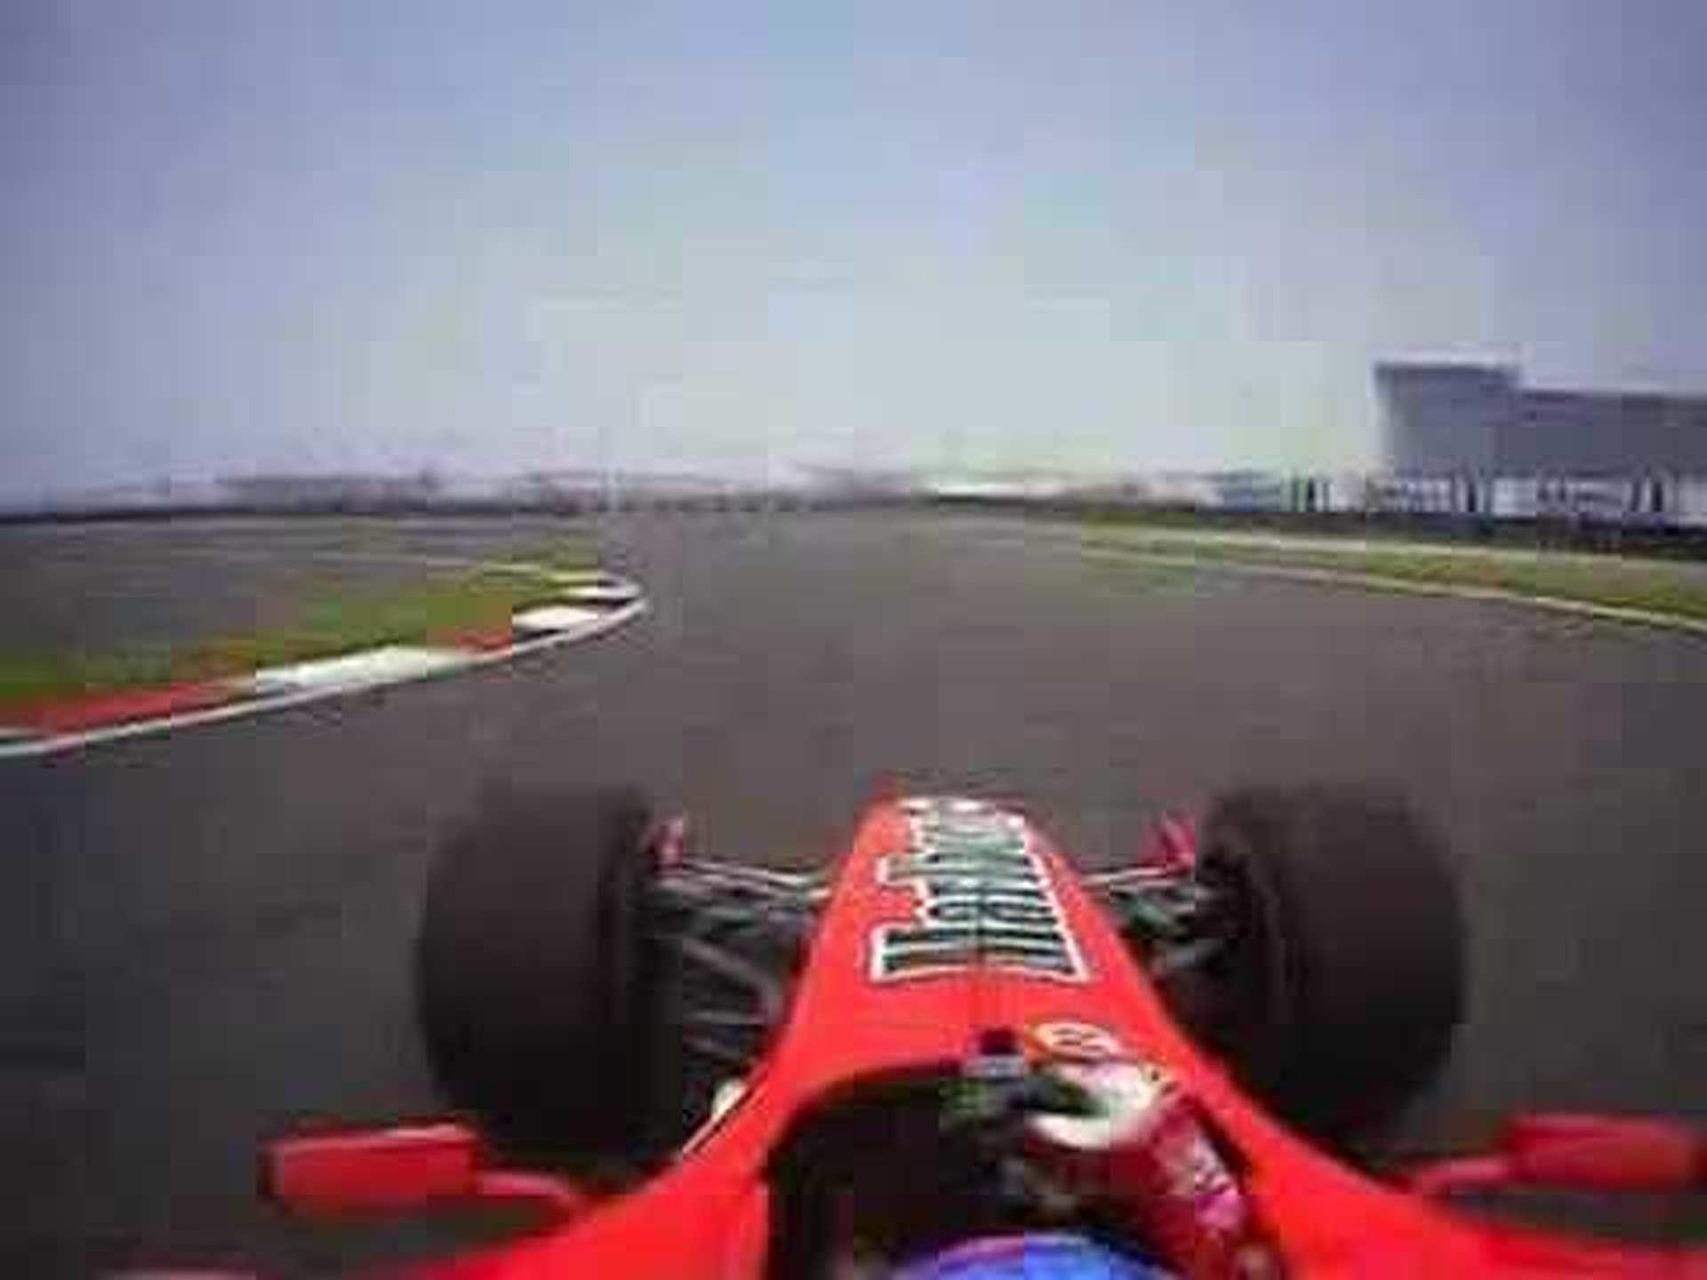 China's lap onboard